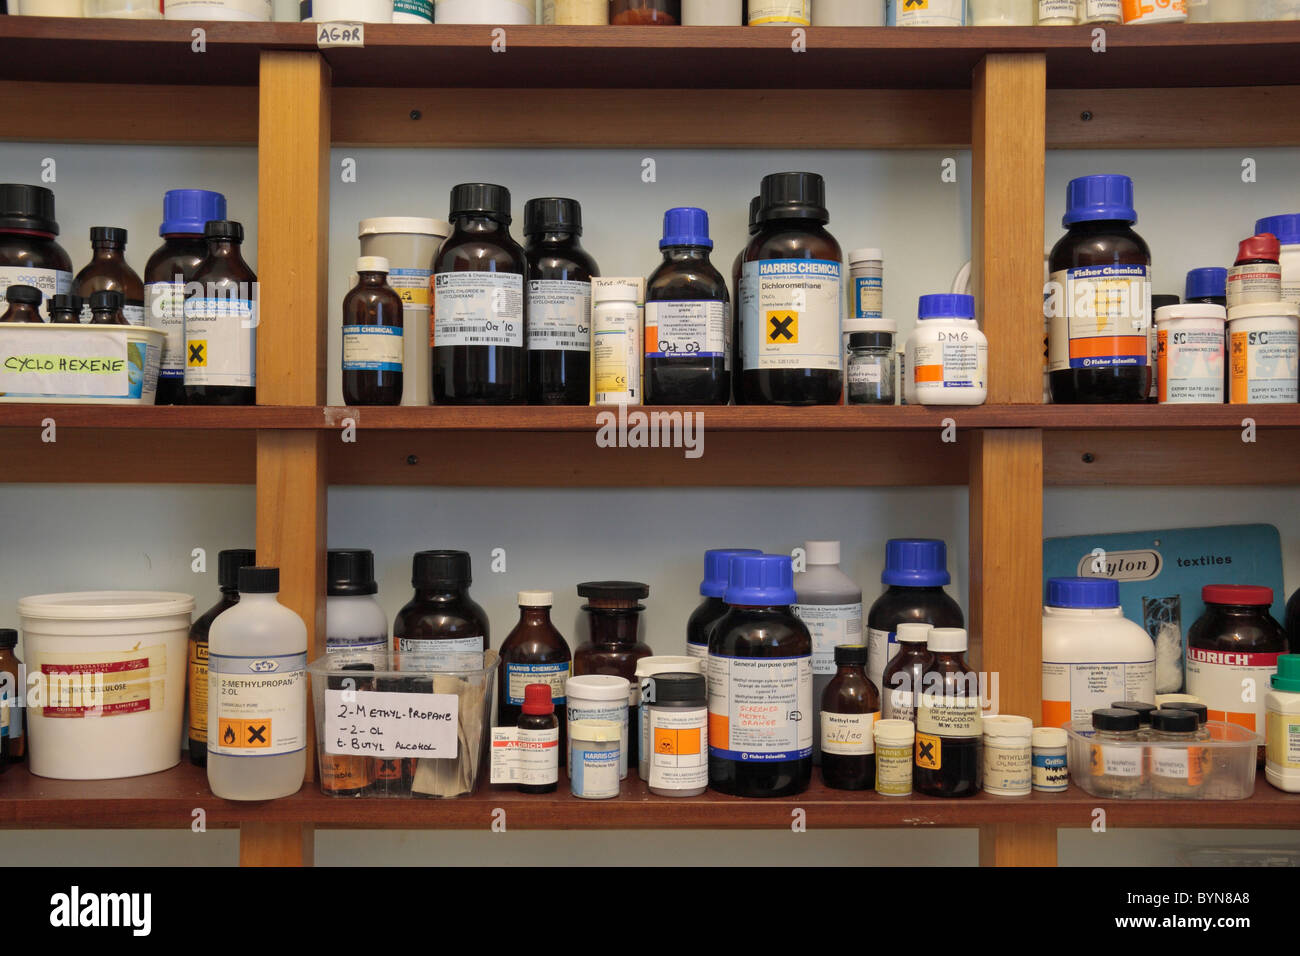 Shelves Of Assorted Chemicals In A School Chemical Storage